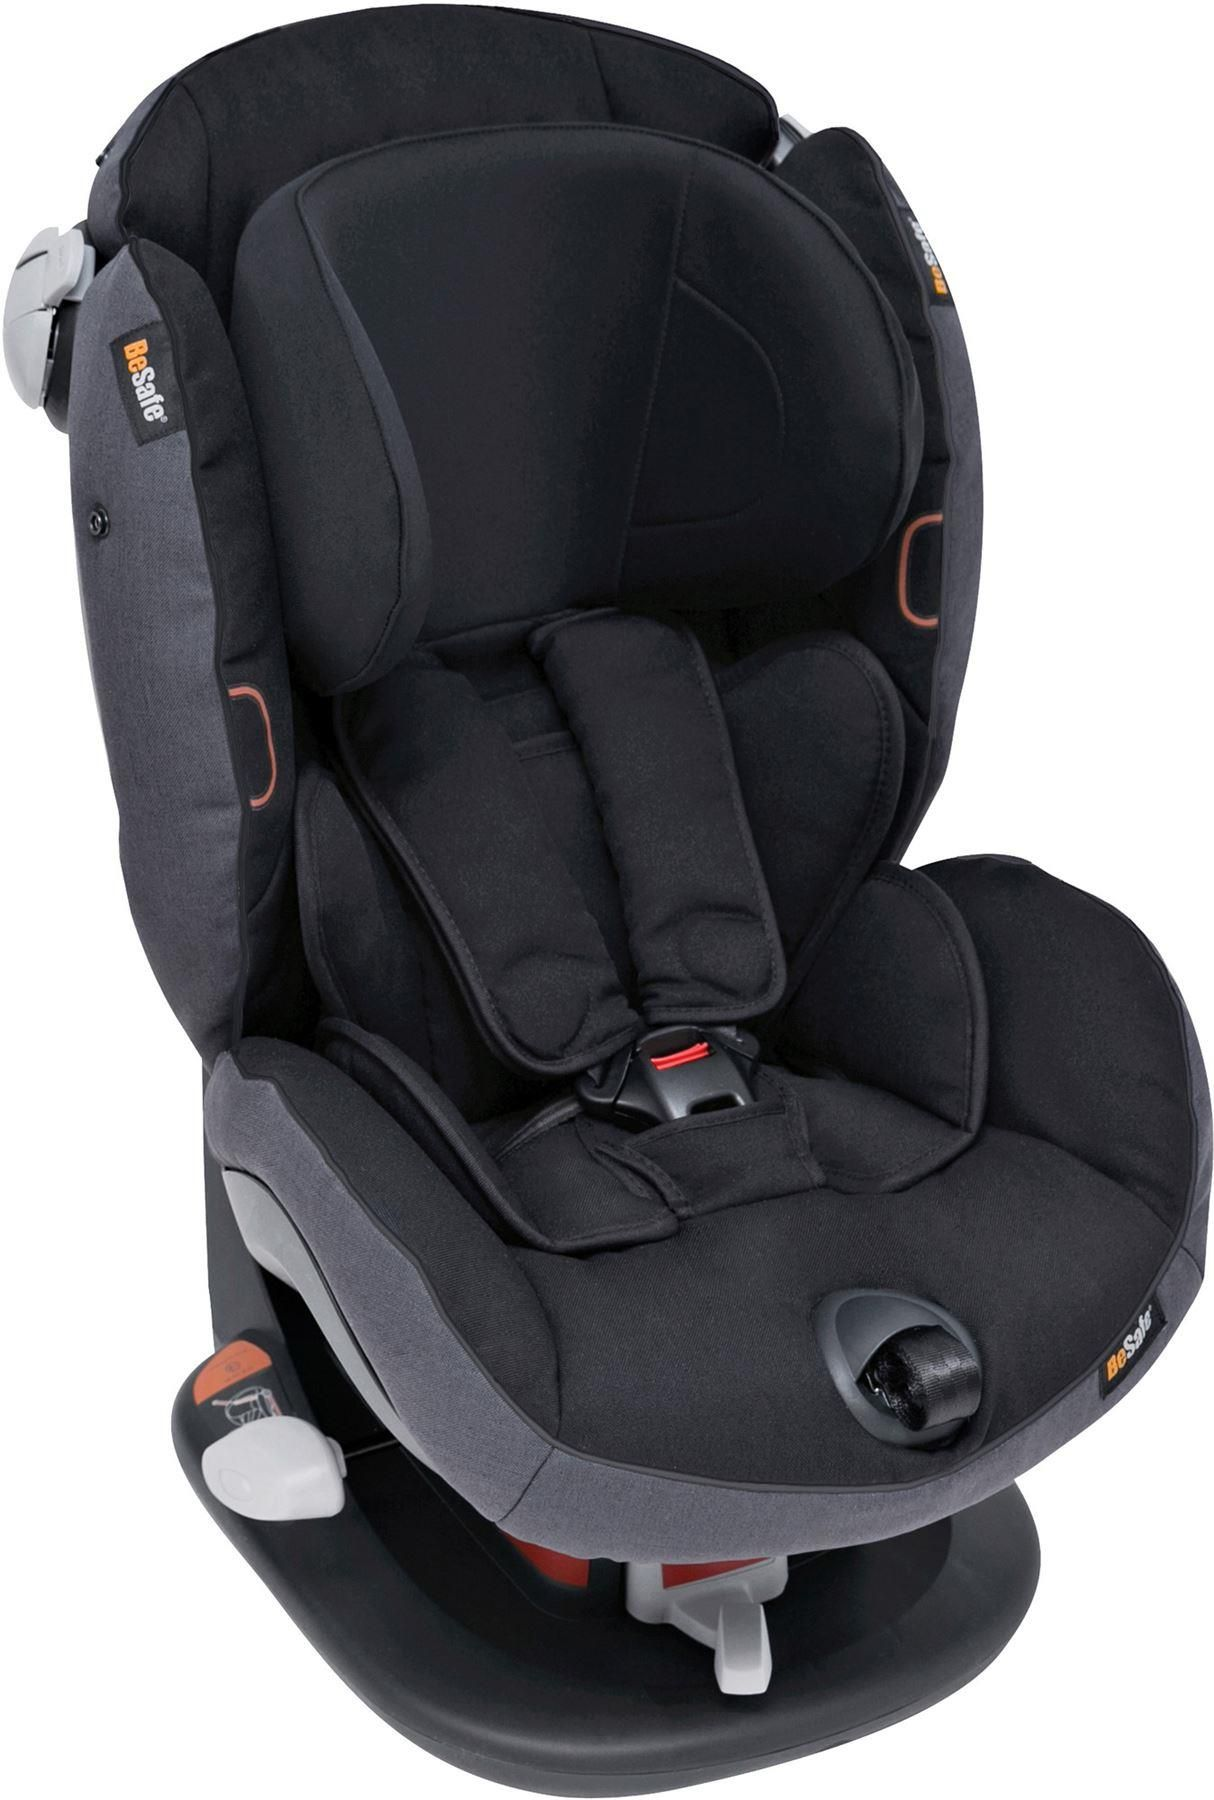 Joie Isofix Ebay Besafe Izi Comfort X3 Midnight Black Mélange Products In